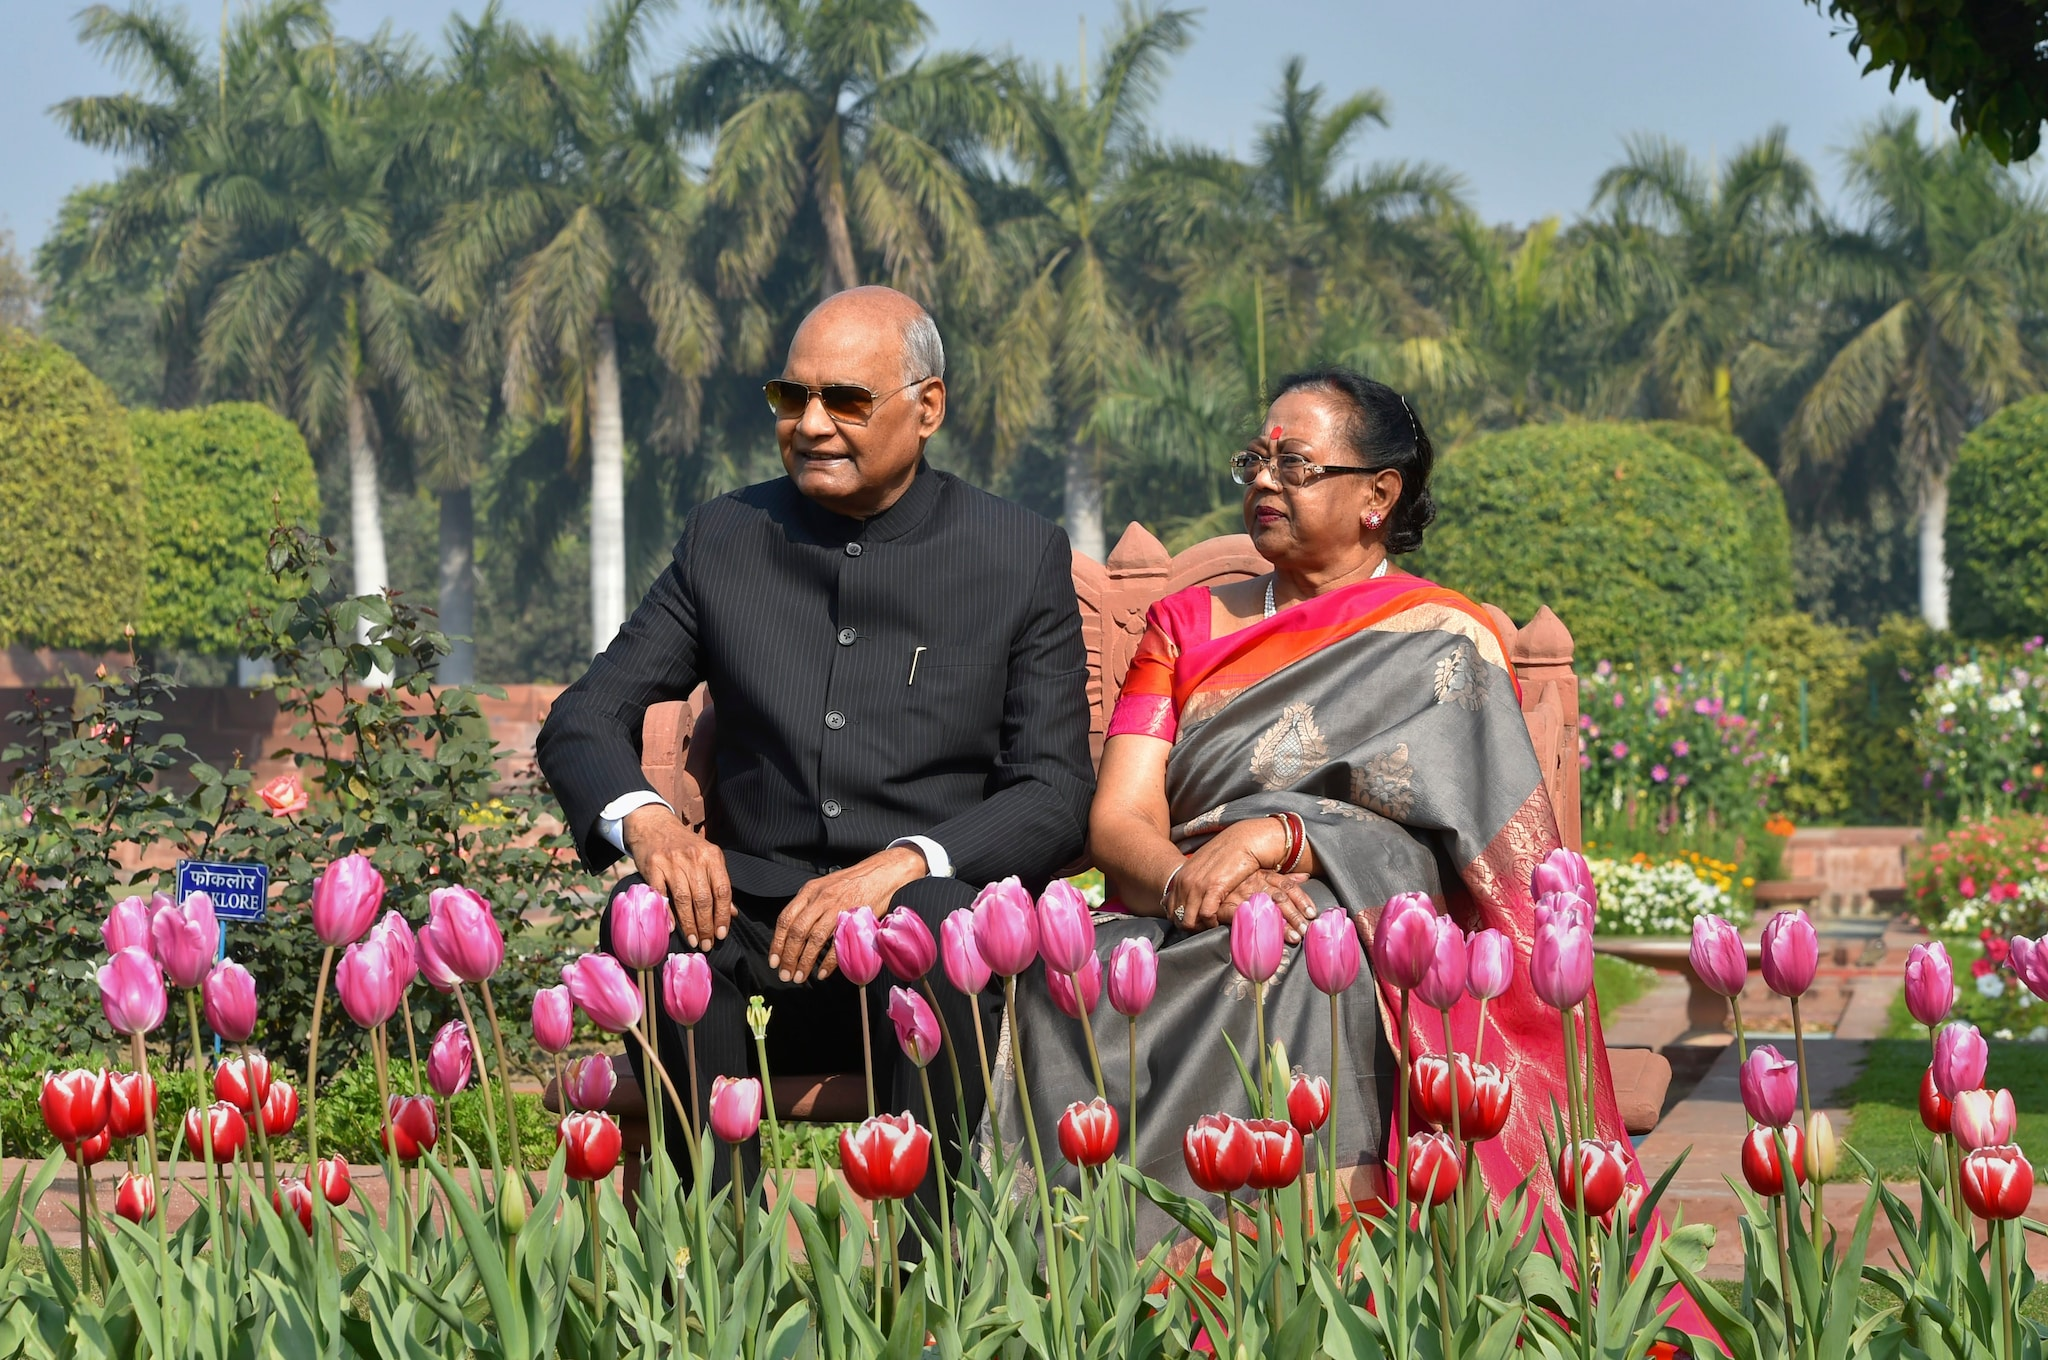 President Ram Nath Kovind and First Lady Savita Kovind sit near a bed of tulips during a preview of the Mughal Gardens at Rashtrapati Bhavan in New Delhi, Monday, Feb. 04, 2019.